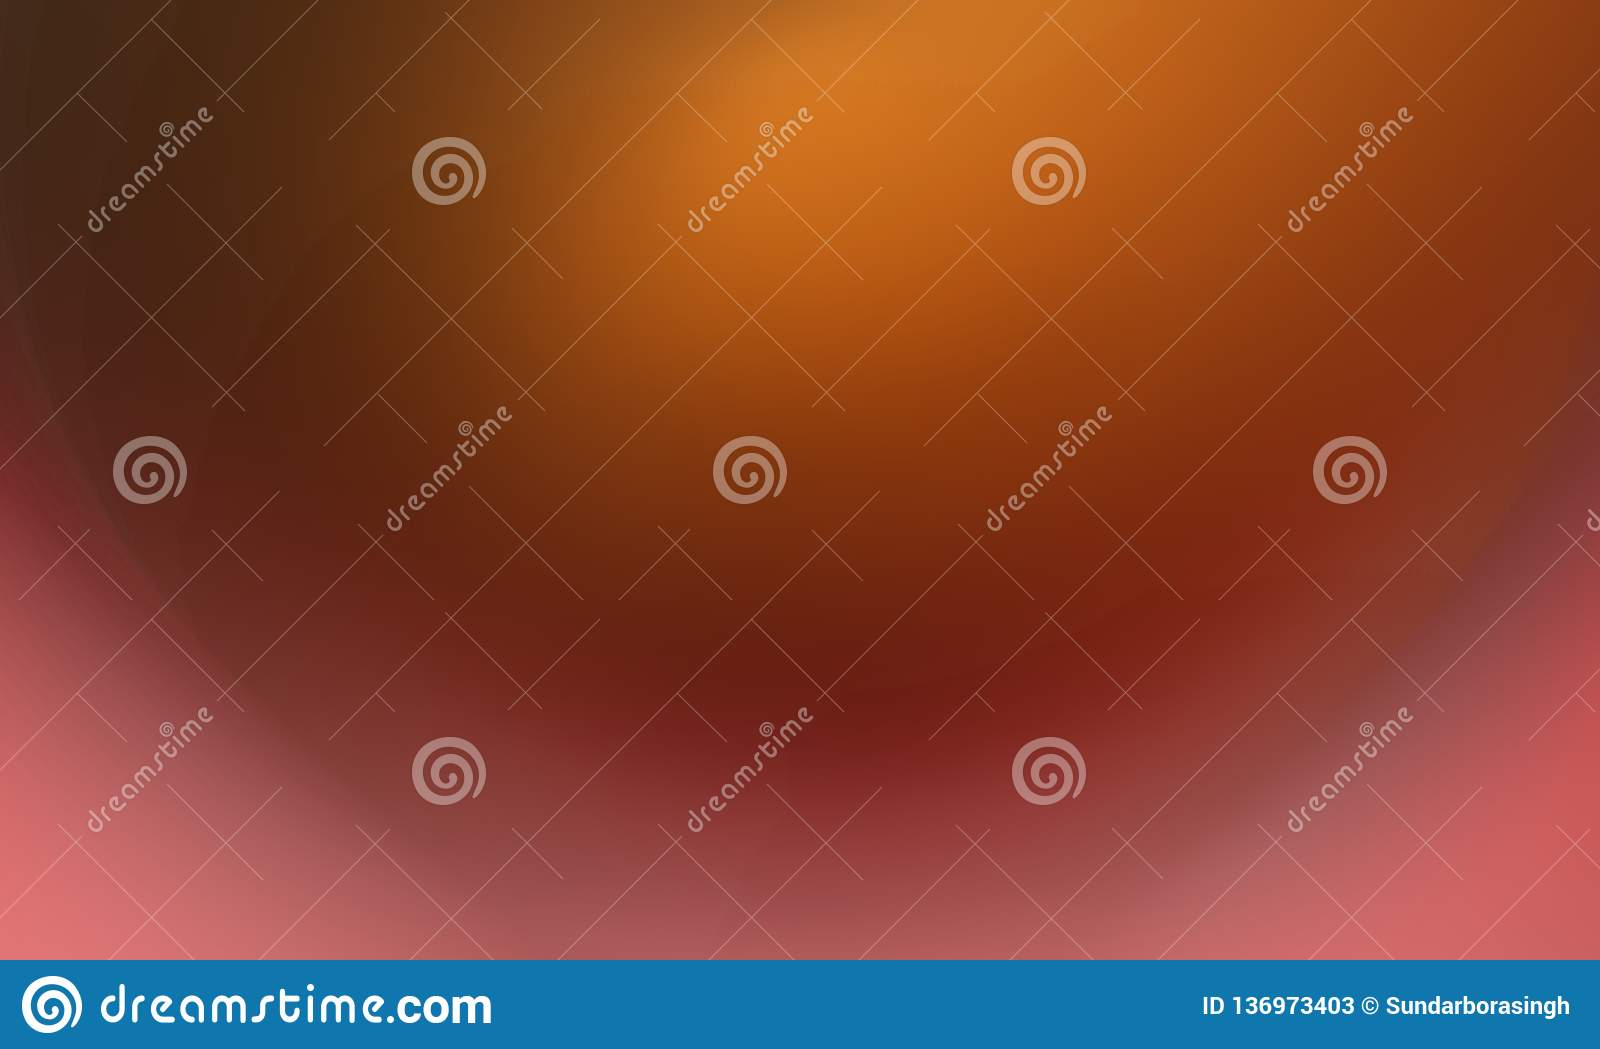 Abstract Motion Blur And Bright Effects Background Wallpaper